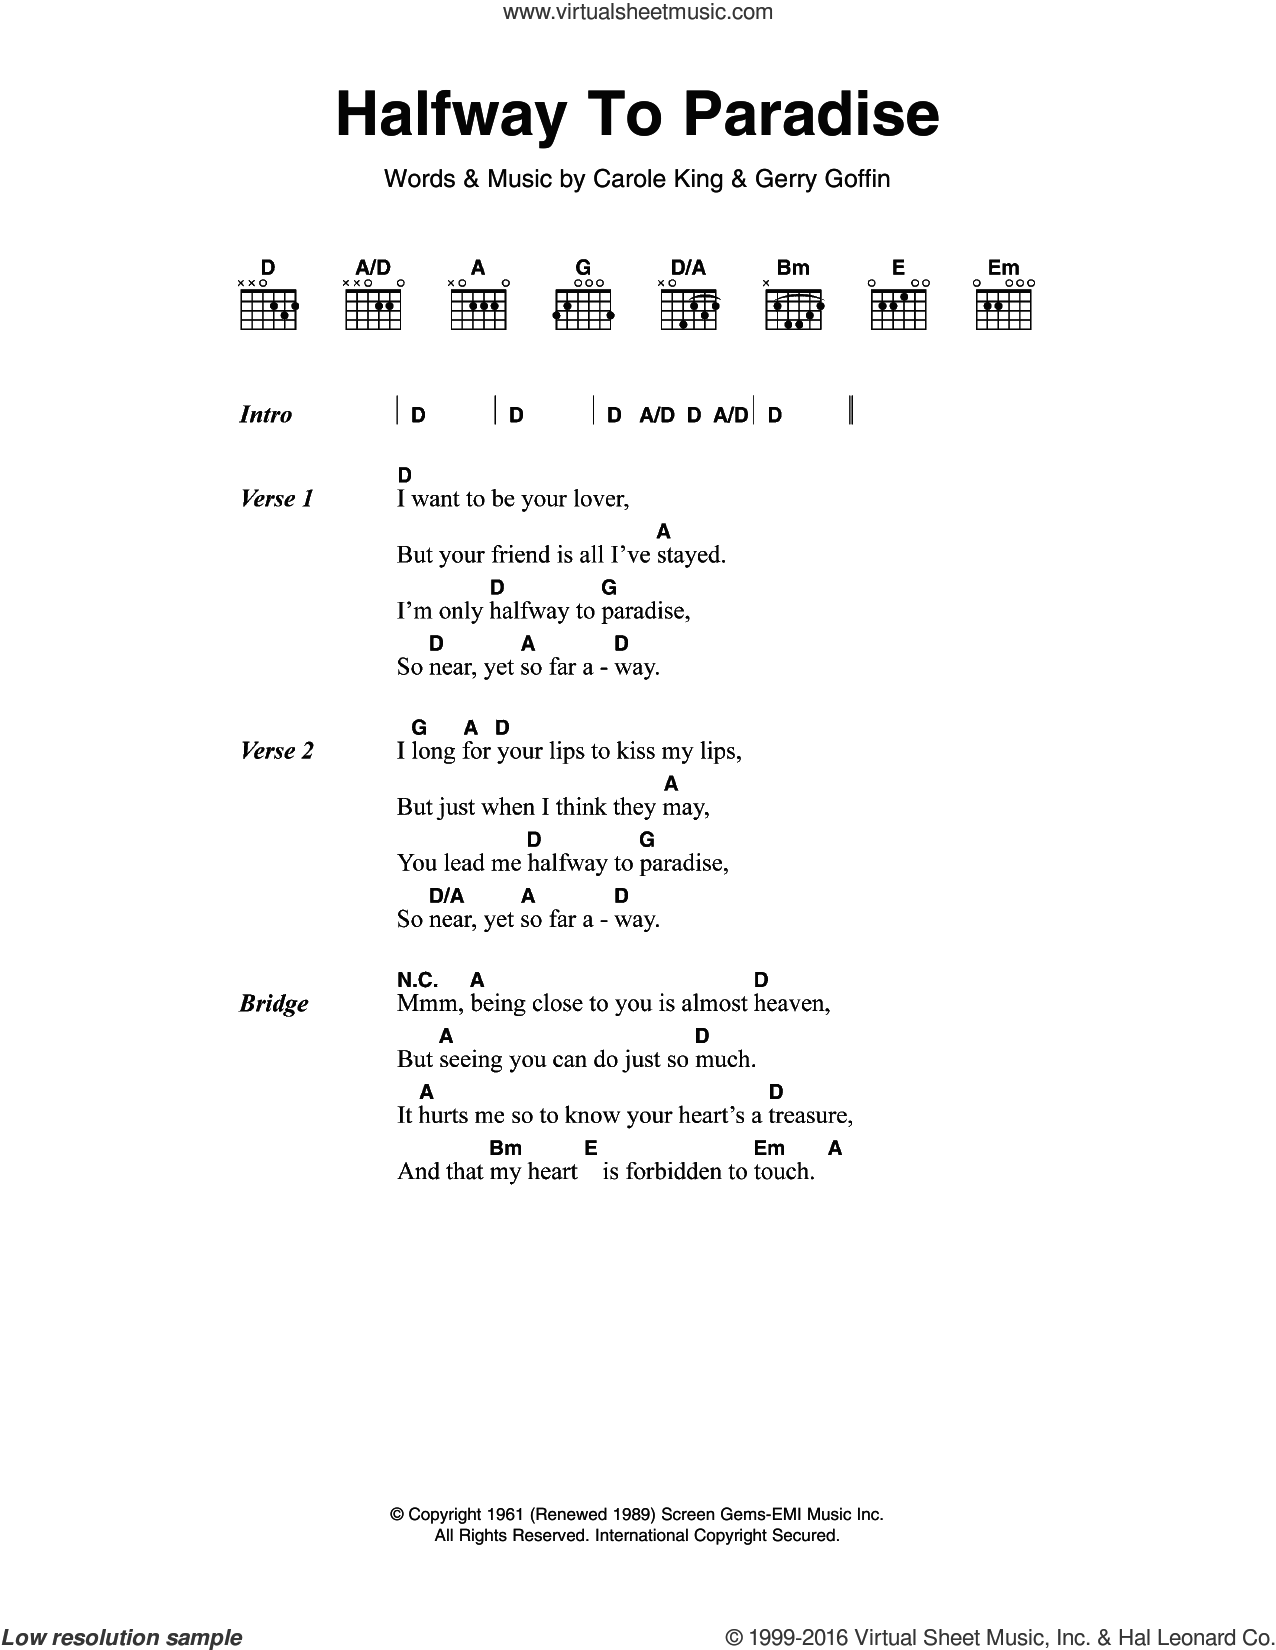 Halfway To Paradise sheet music for guitar (chords) by Billy Fury, Carole King and Gerry Goffin, intermediate skill level